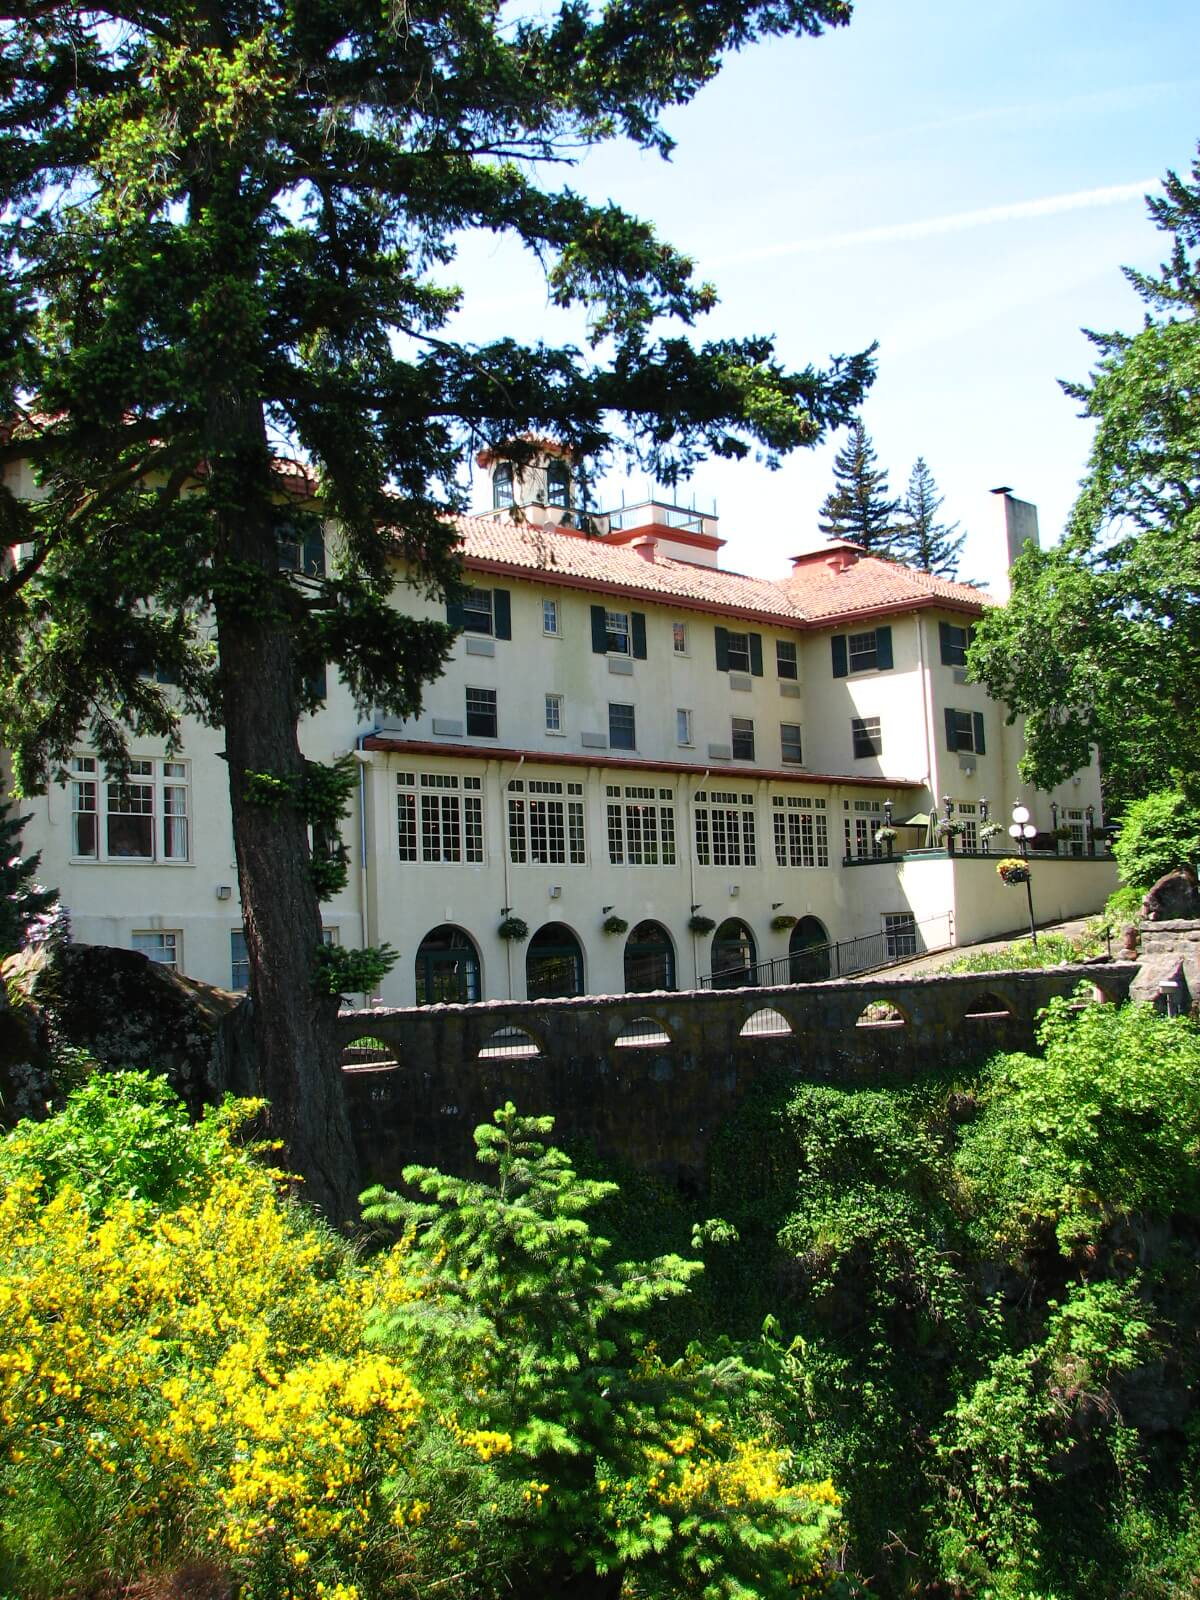 Historical hotel grounds, the Columbia River Gorge hotel, surrounded by trees and greenery.